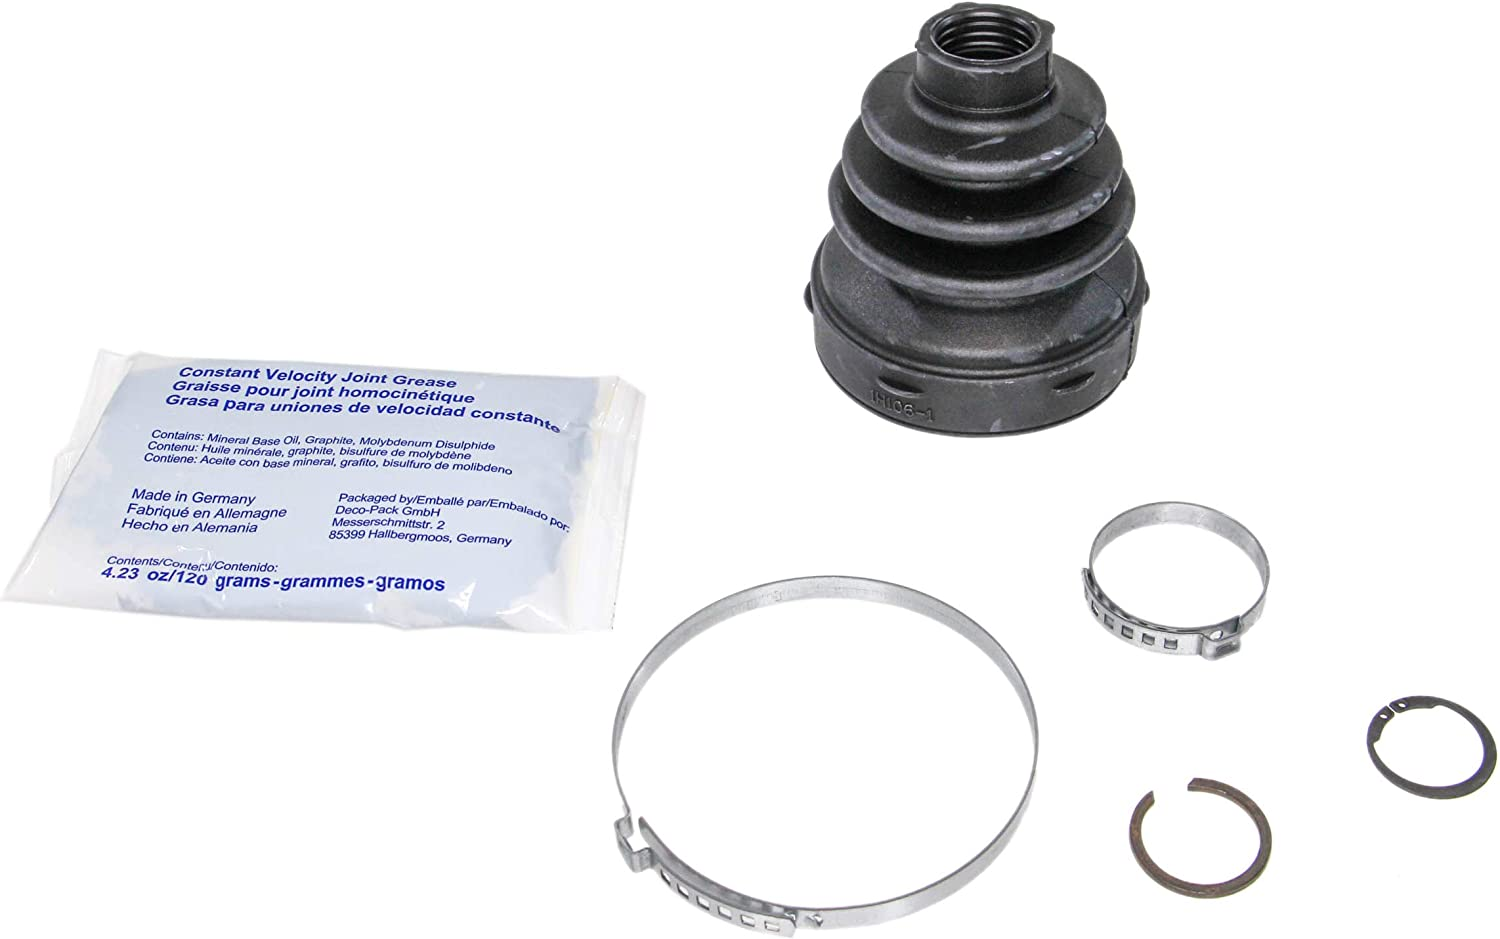 Universal CV Joint For Boot Kit Gaiter With Grease And Clamps Pack of 2